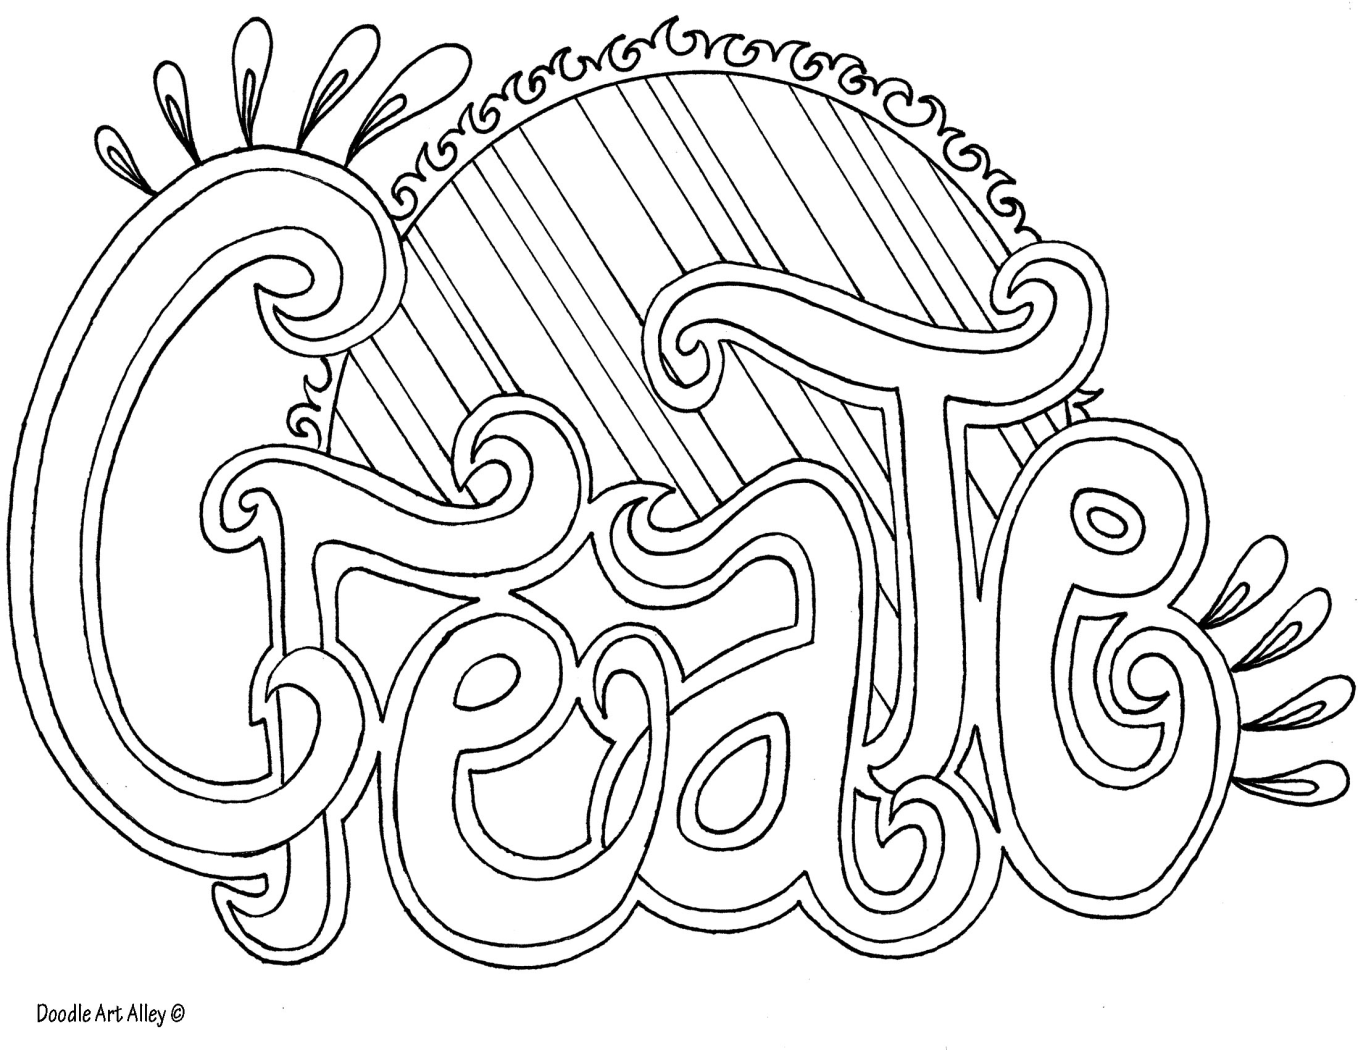 middle school coloring pages pdf createjpg quote coloring pages coloring pages doodle middle school pdf pages coloring